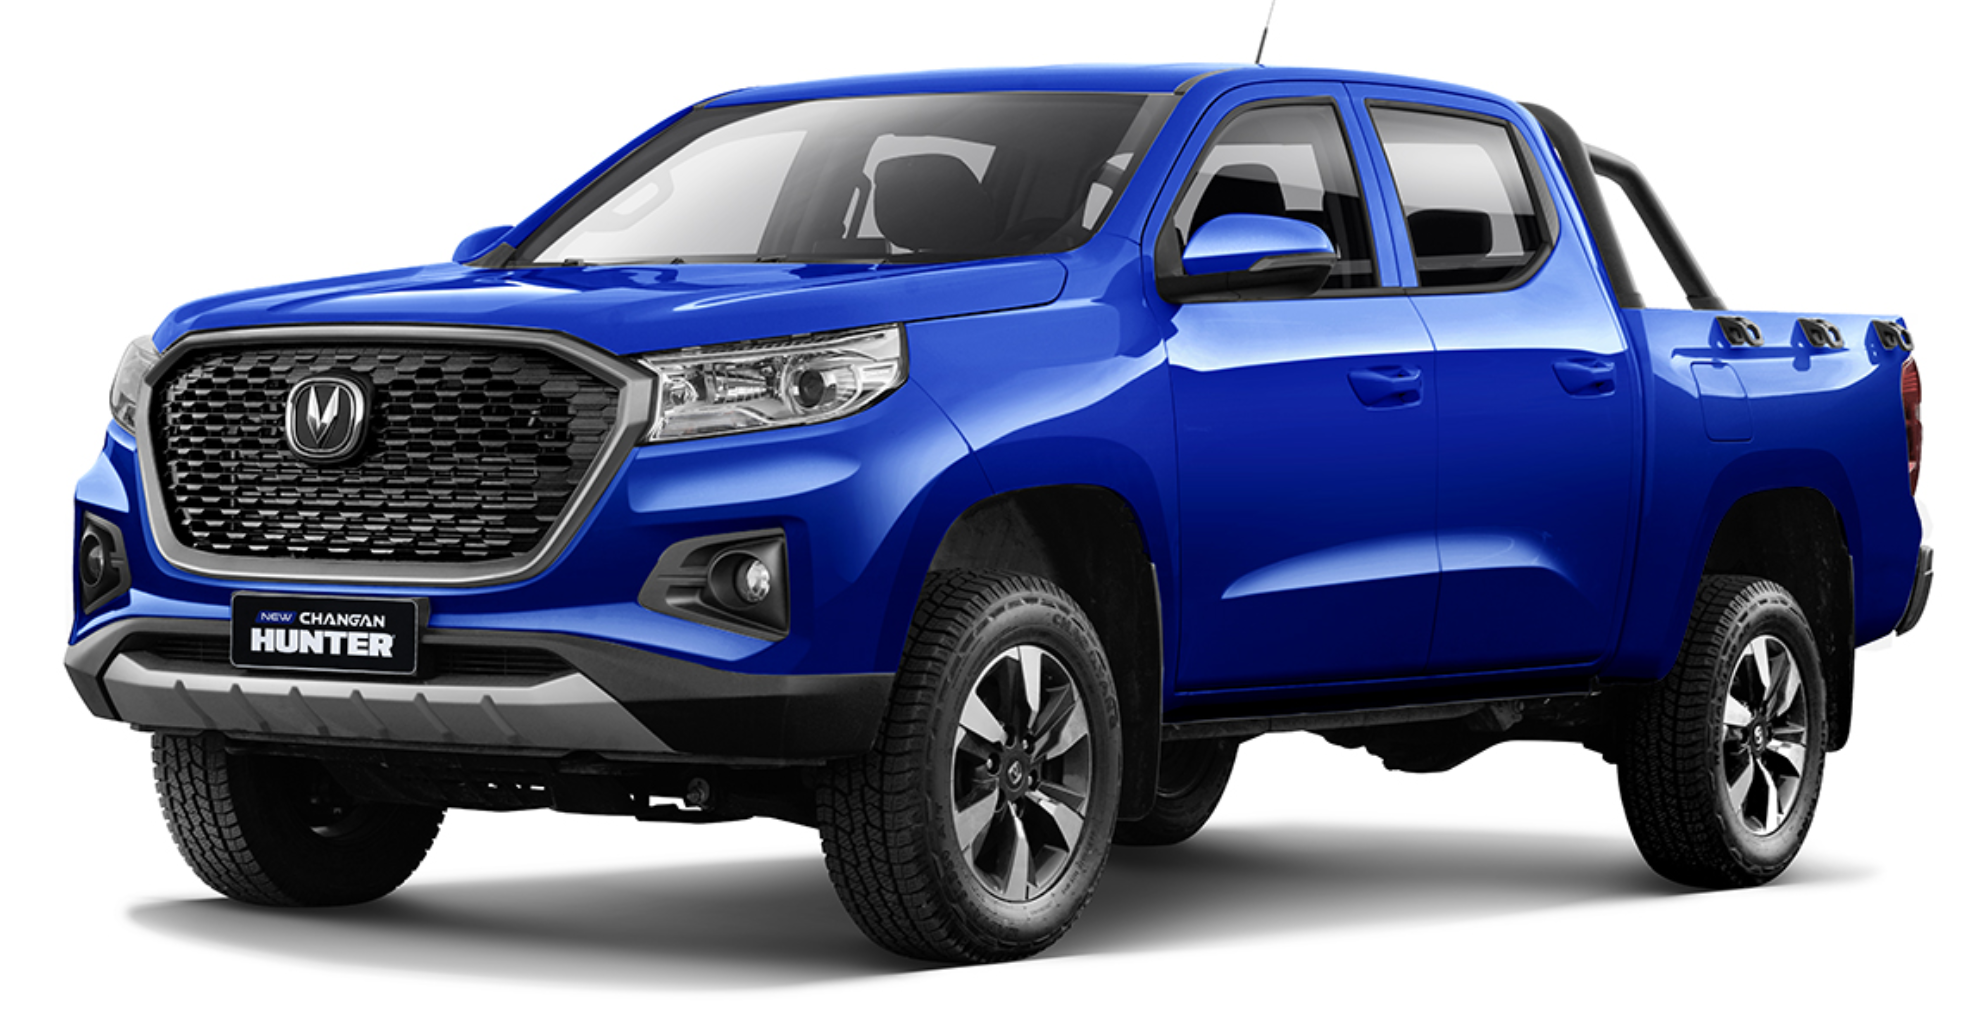 Changan F70 Pickup Price in Pakistan 2021 Launch Date Features Specifications Engine Power Transmission Exterior Design